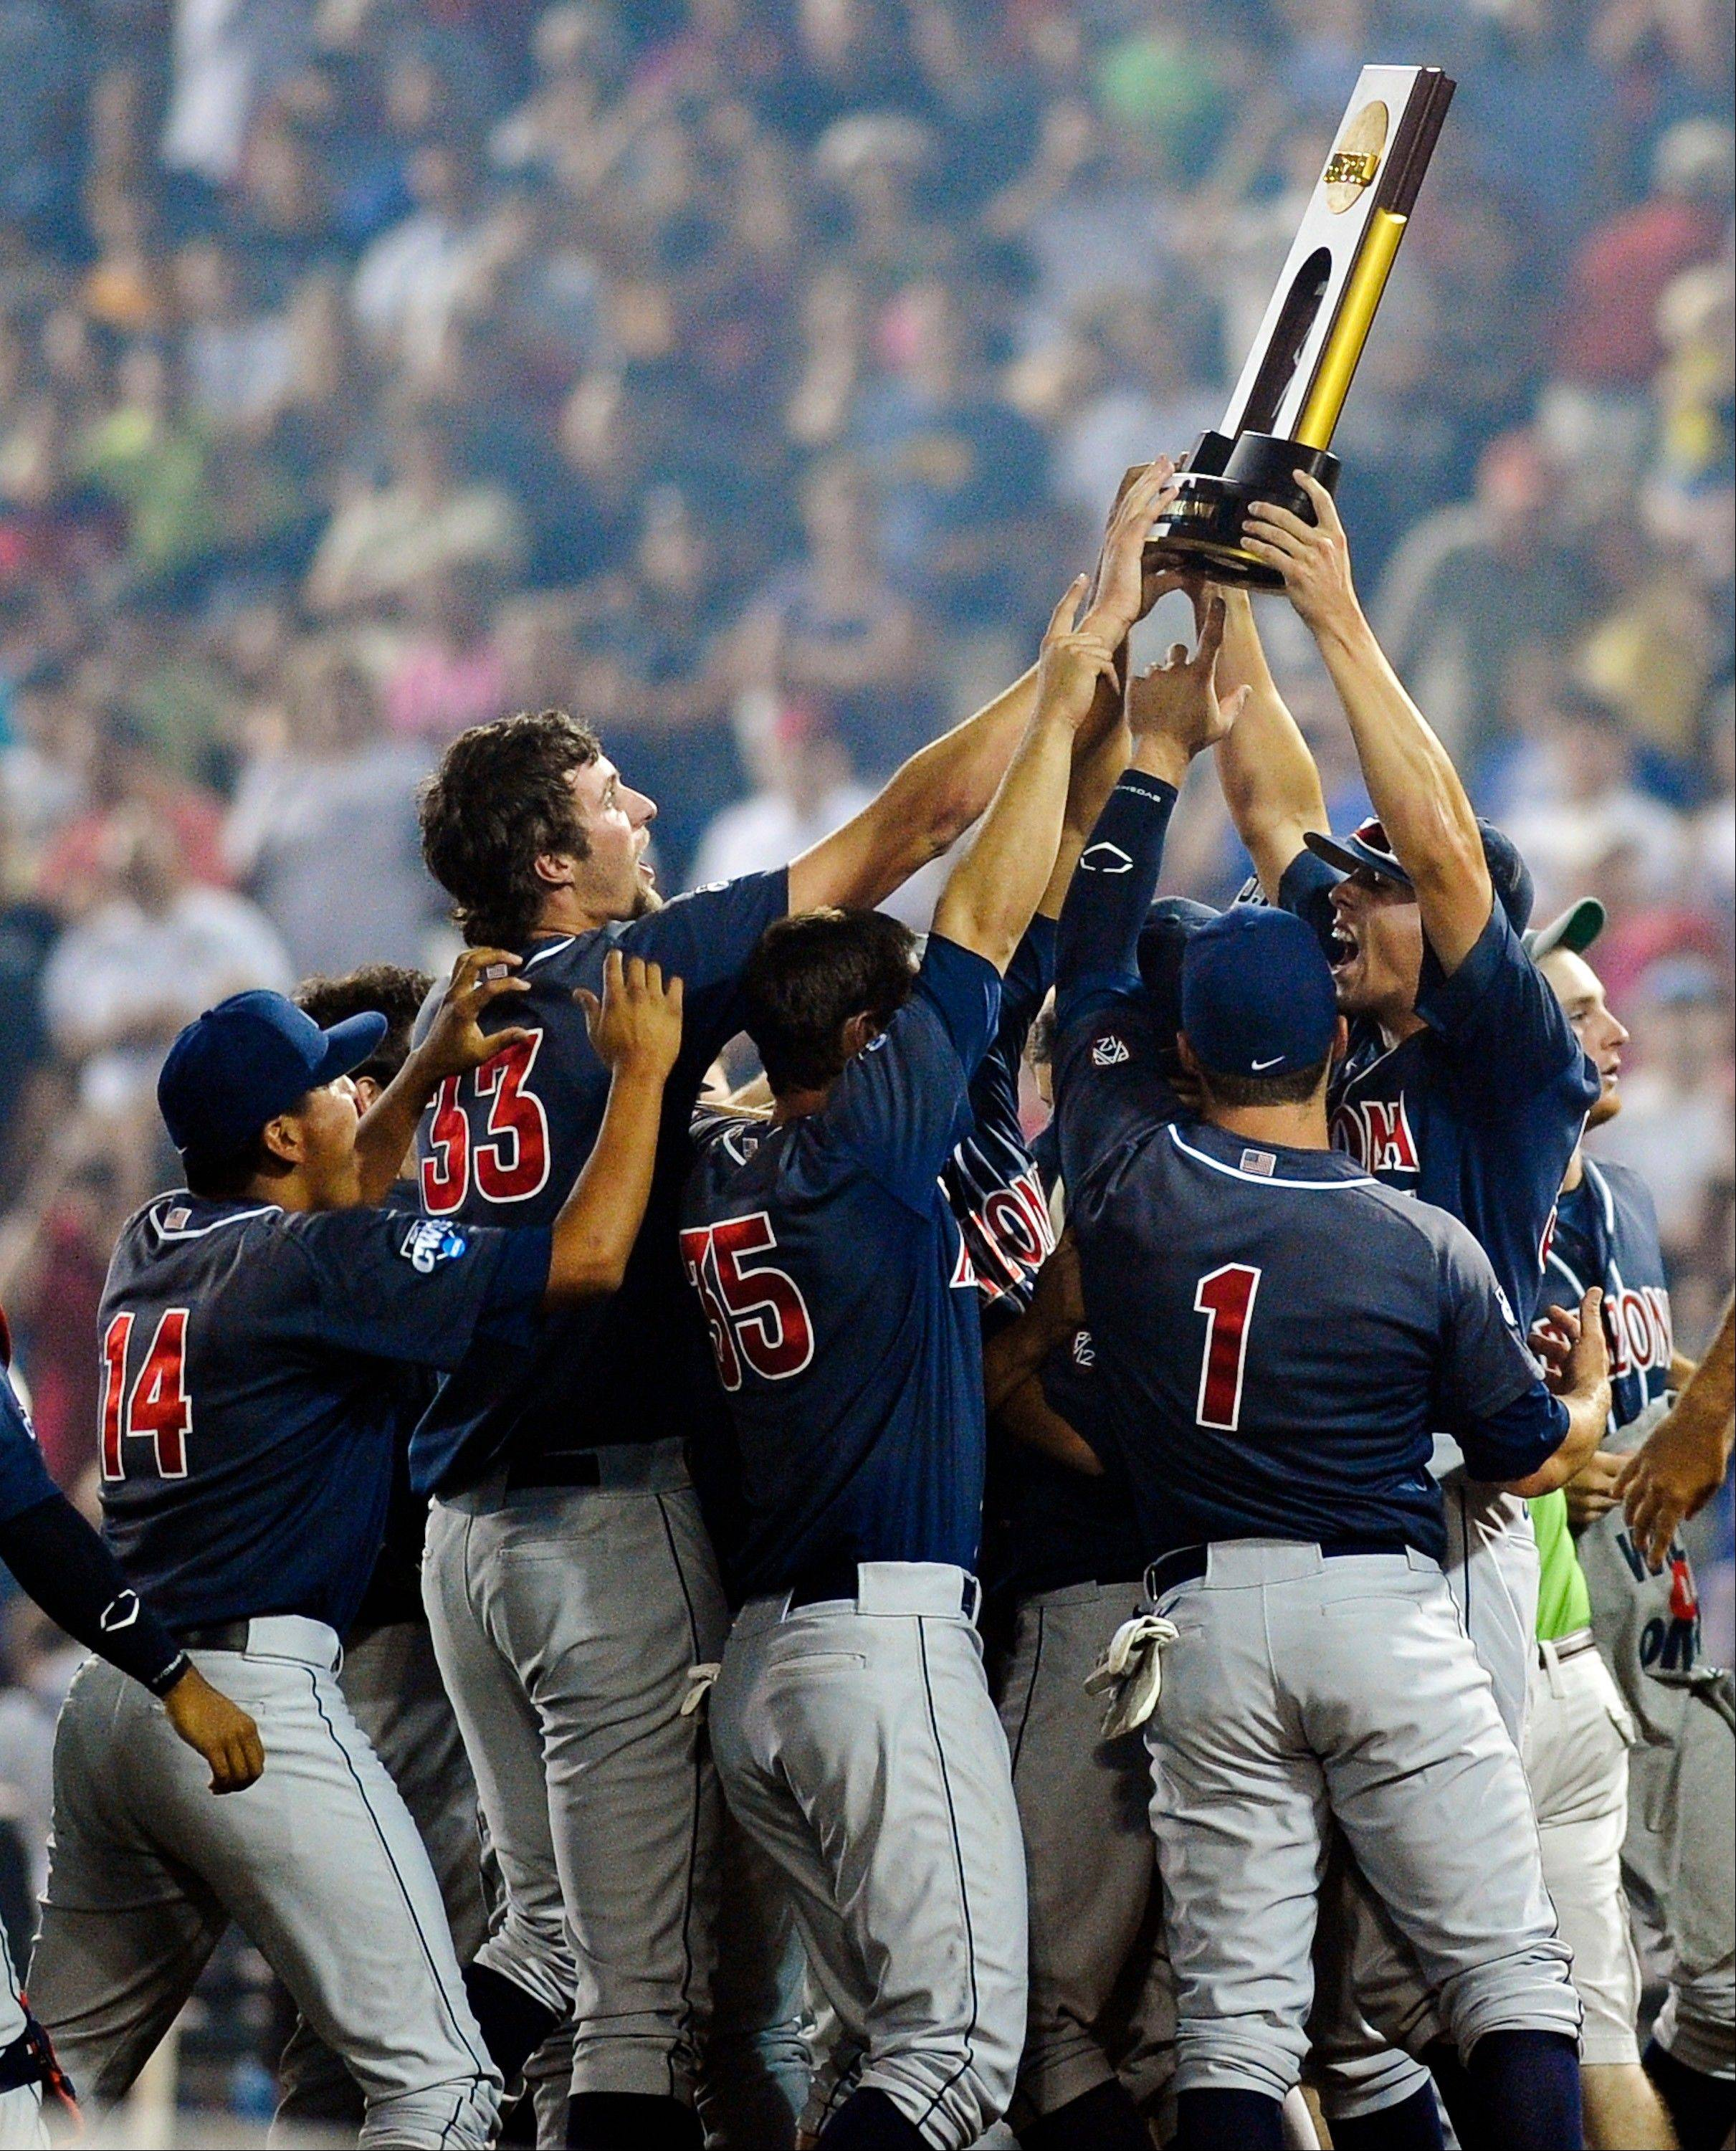 Arizona players hoist the trophy Monday after defeating South Carolina 4-1 in Game 2 to win the NCAA College World Series baseball finals in Omaha, Neb.